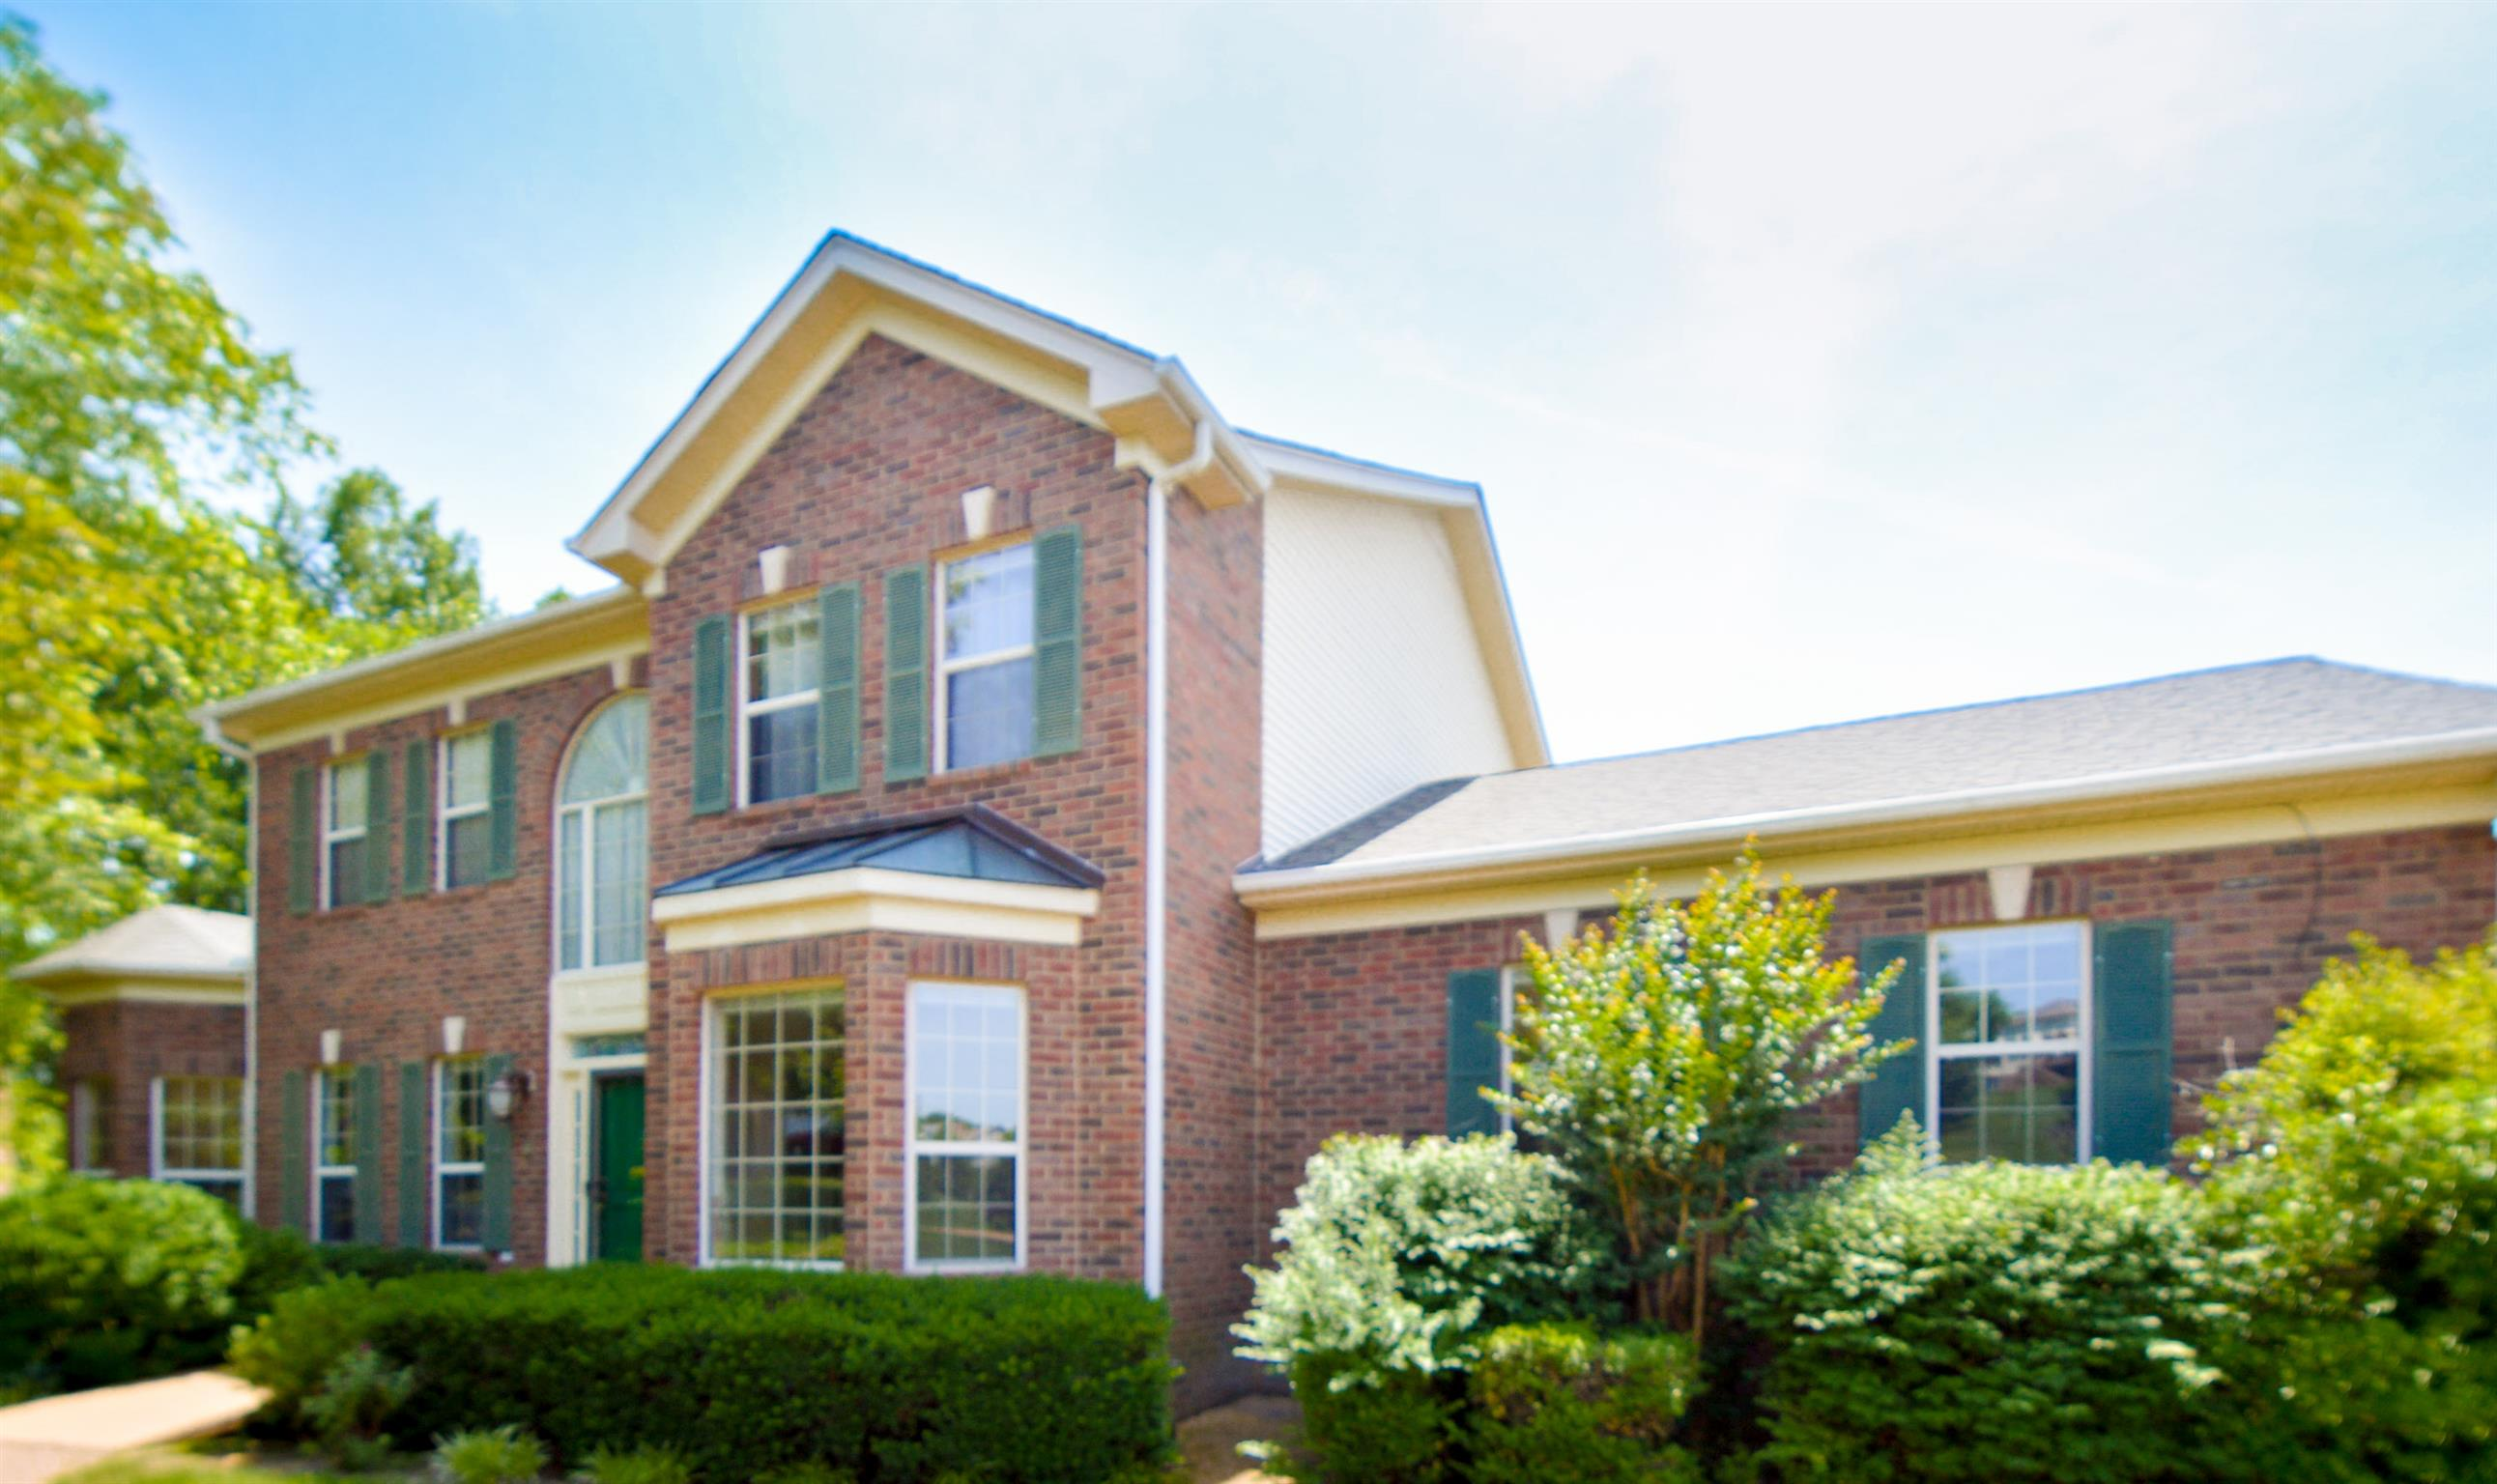 309 Seminole Ct, Goodlettsville in Sumner County County, TN 37072 Home for Sale